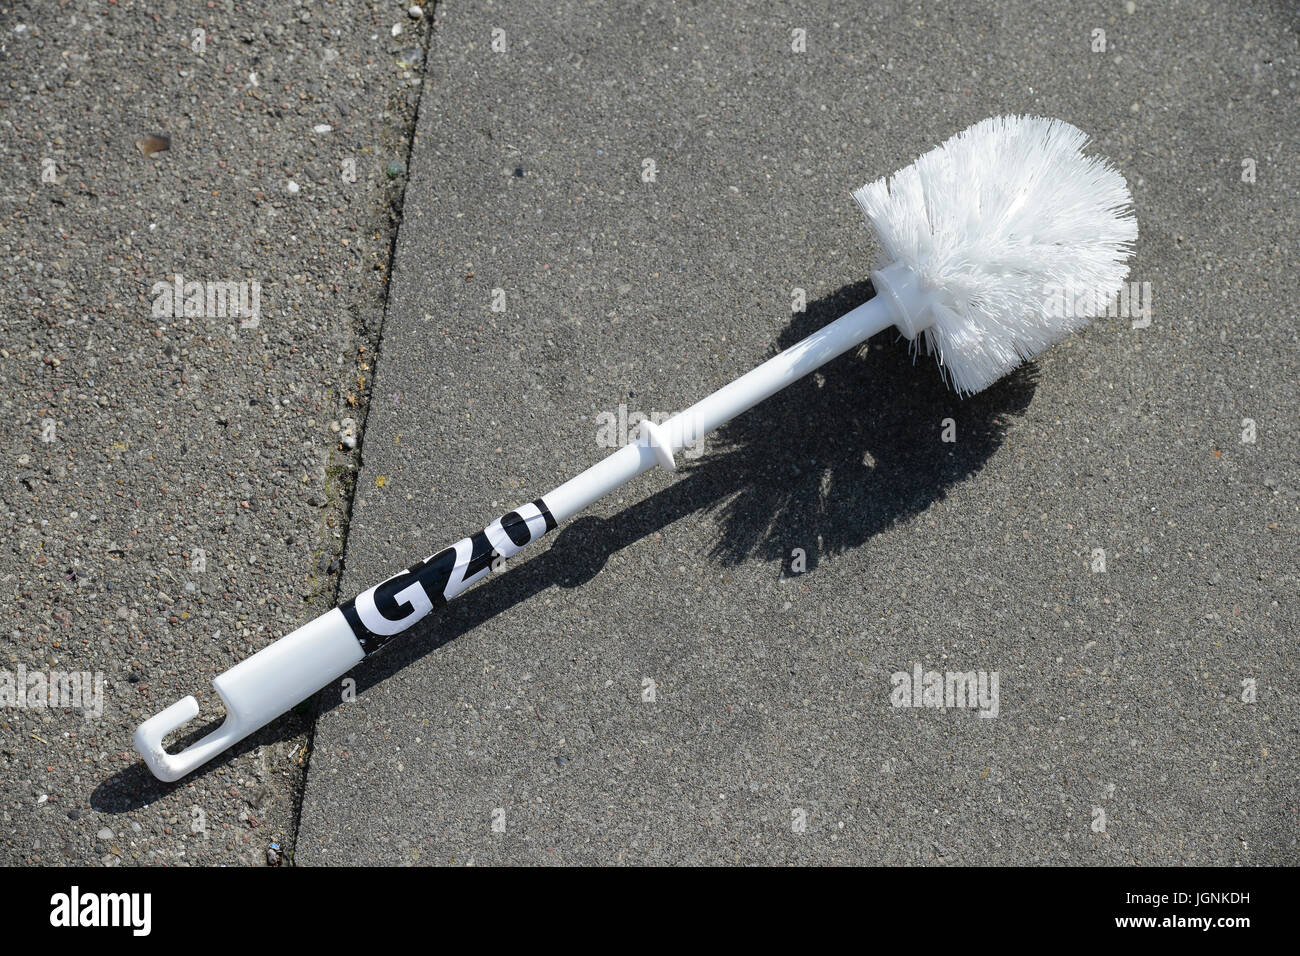 Hamburg, Germany. 8th Jul, 2017. Protest rally on St. Pauli against G-20 summit in July 2017, toilet brush used - Stock Image